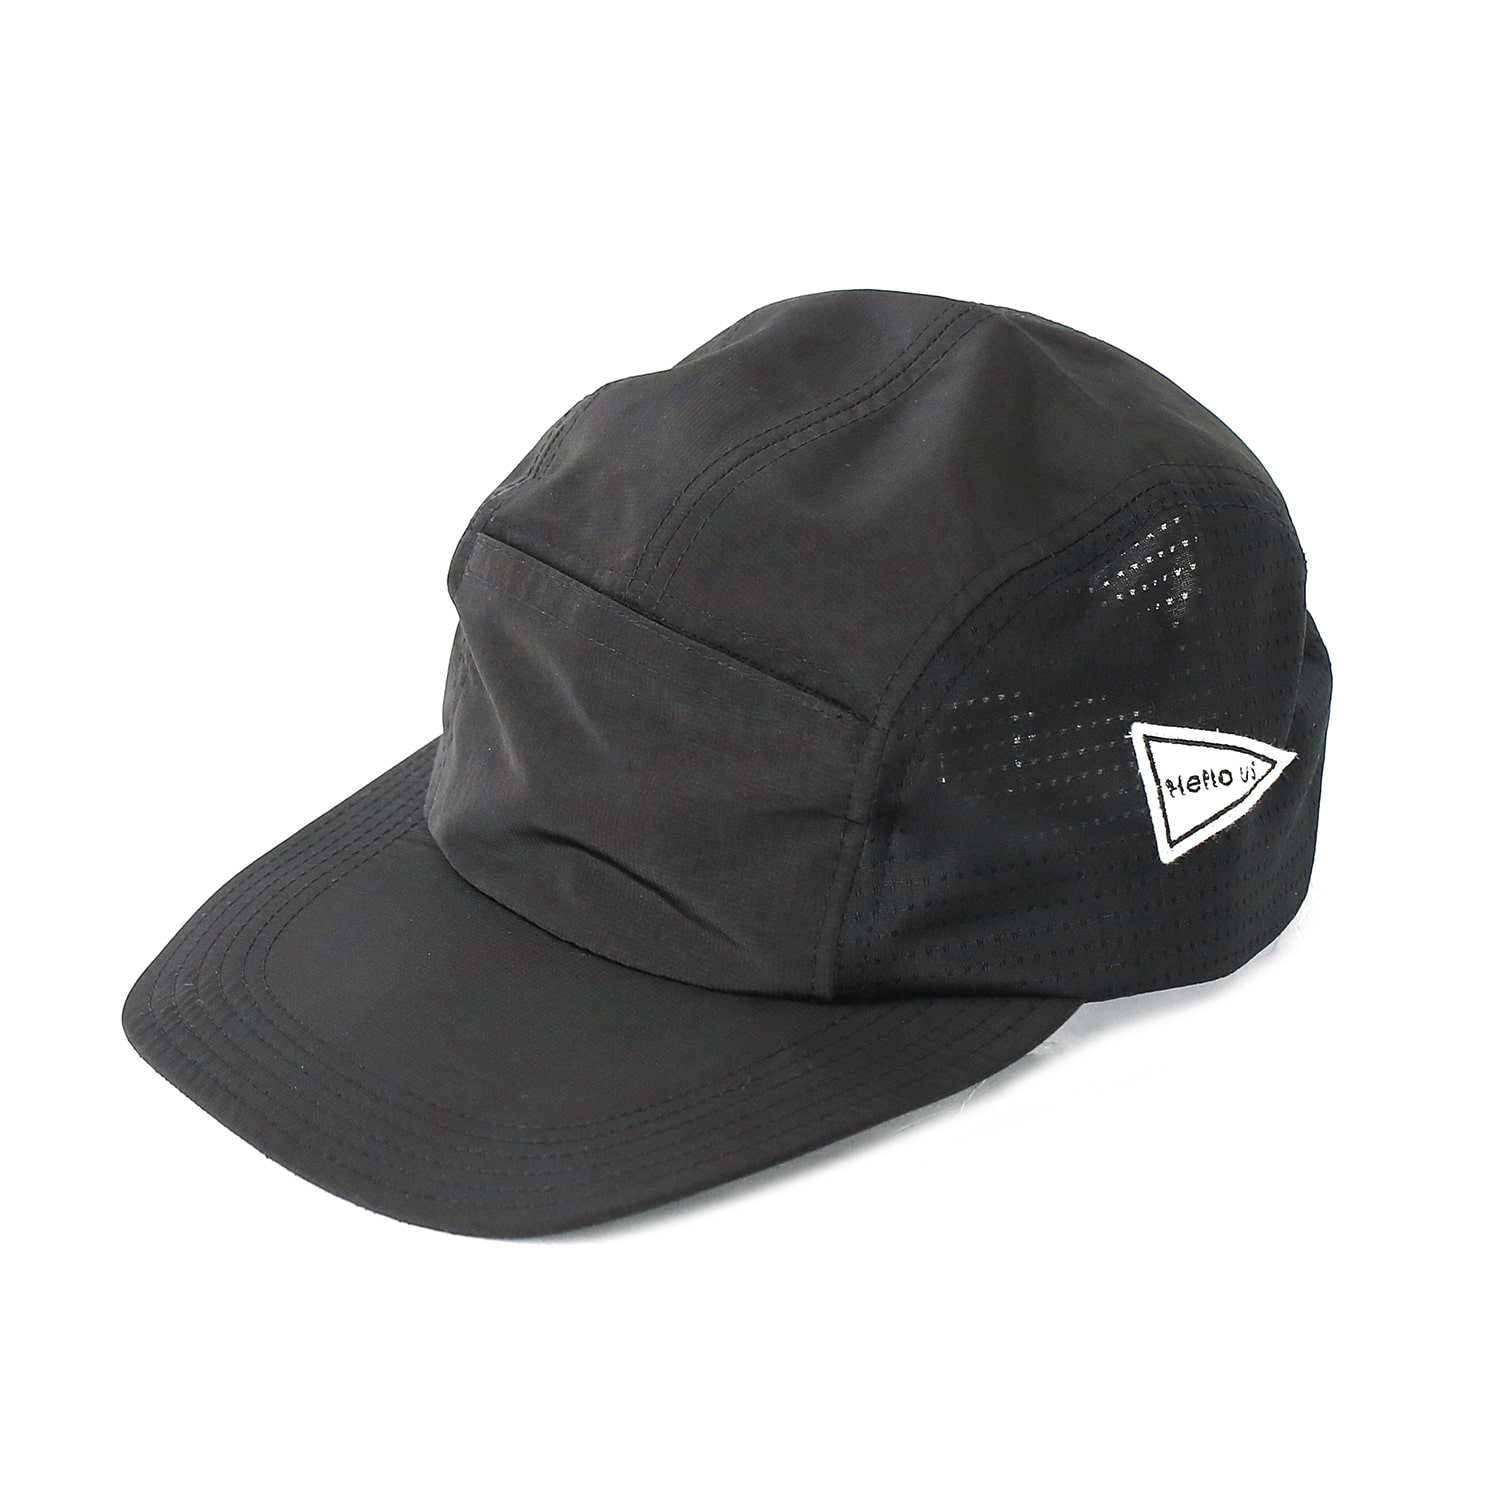 Waterproof Jet Cap - Black